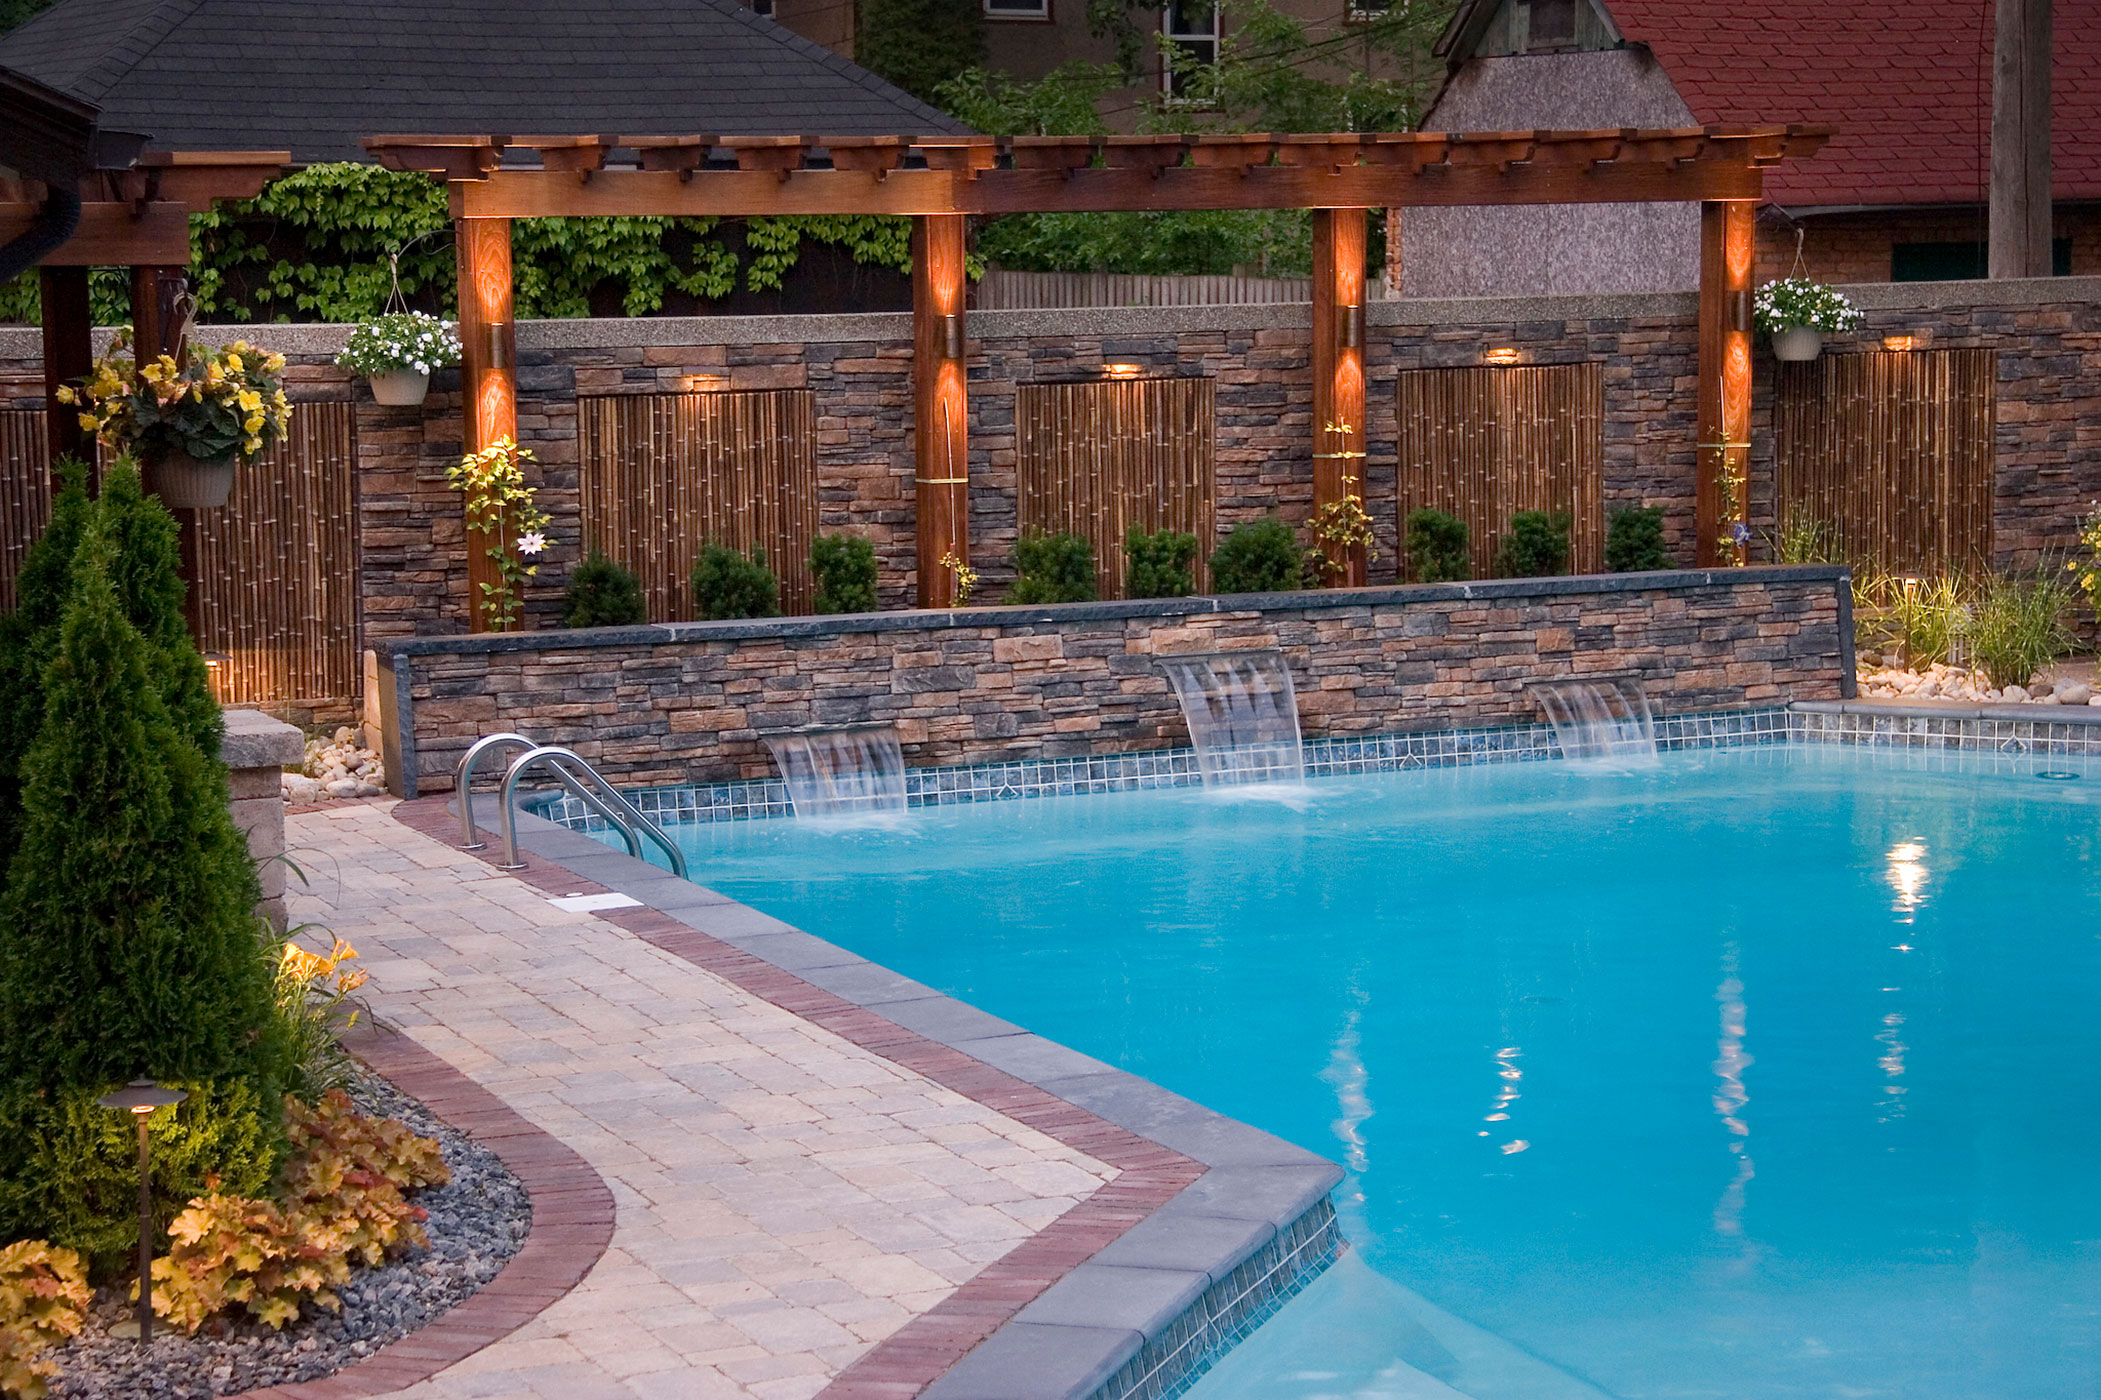 Pool design bellaire landscape inc for Pool design inc